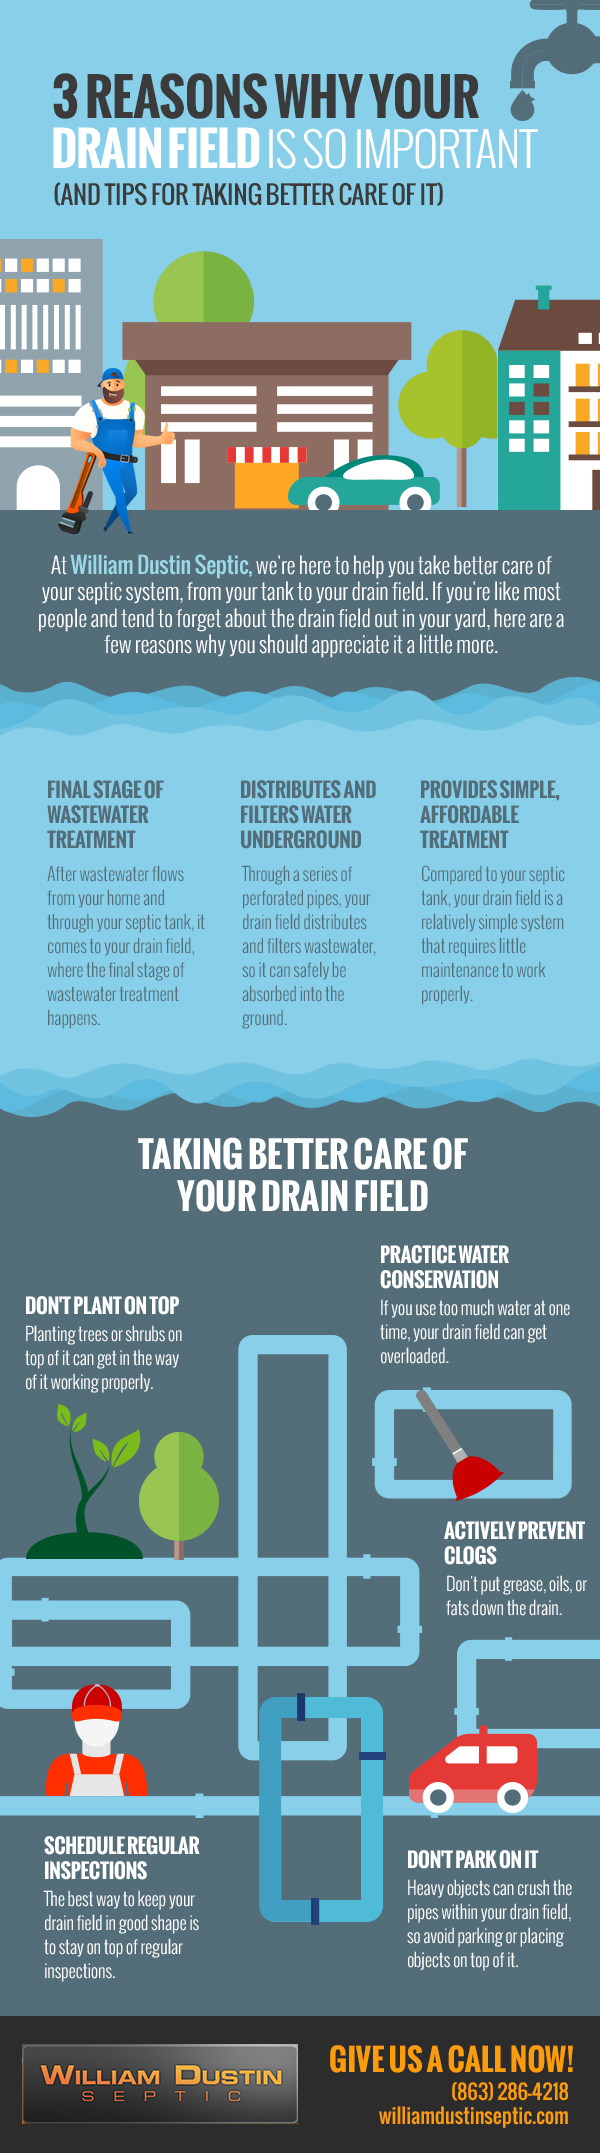 3 Reasons Why Your Drain Field is So Important (and Tips for Taking Better Care of It) [infographic]